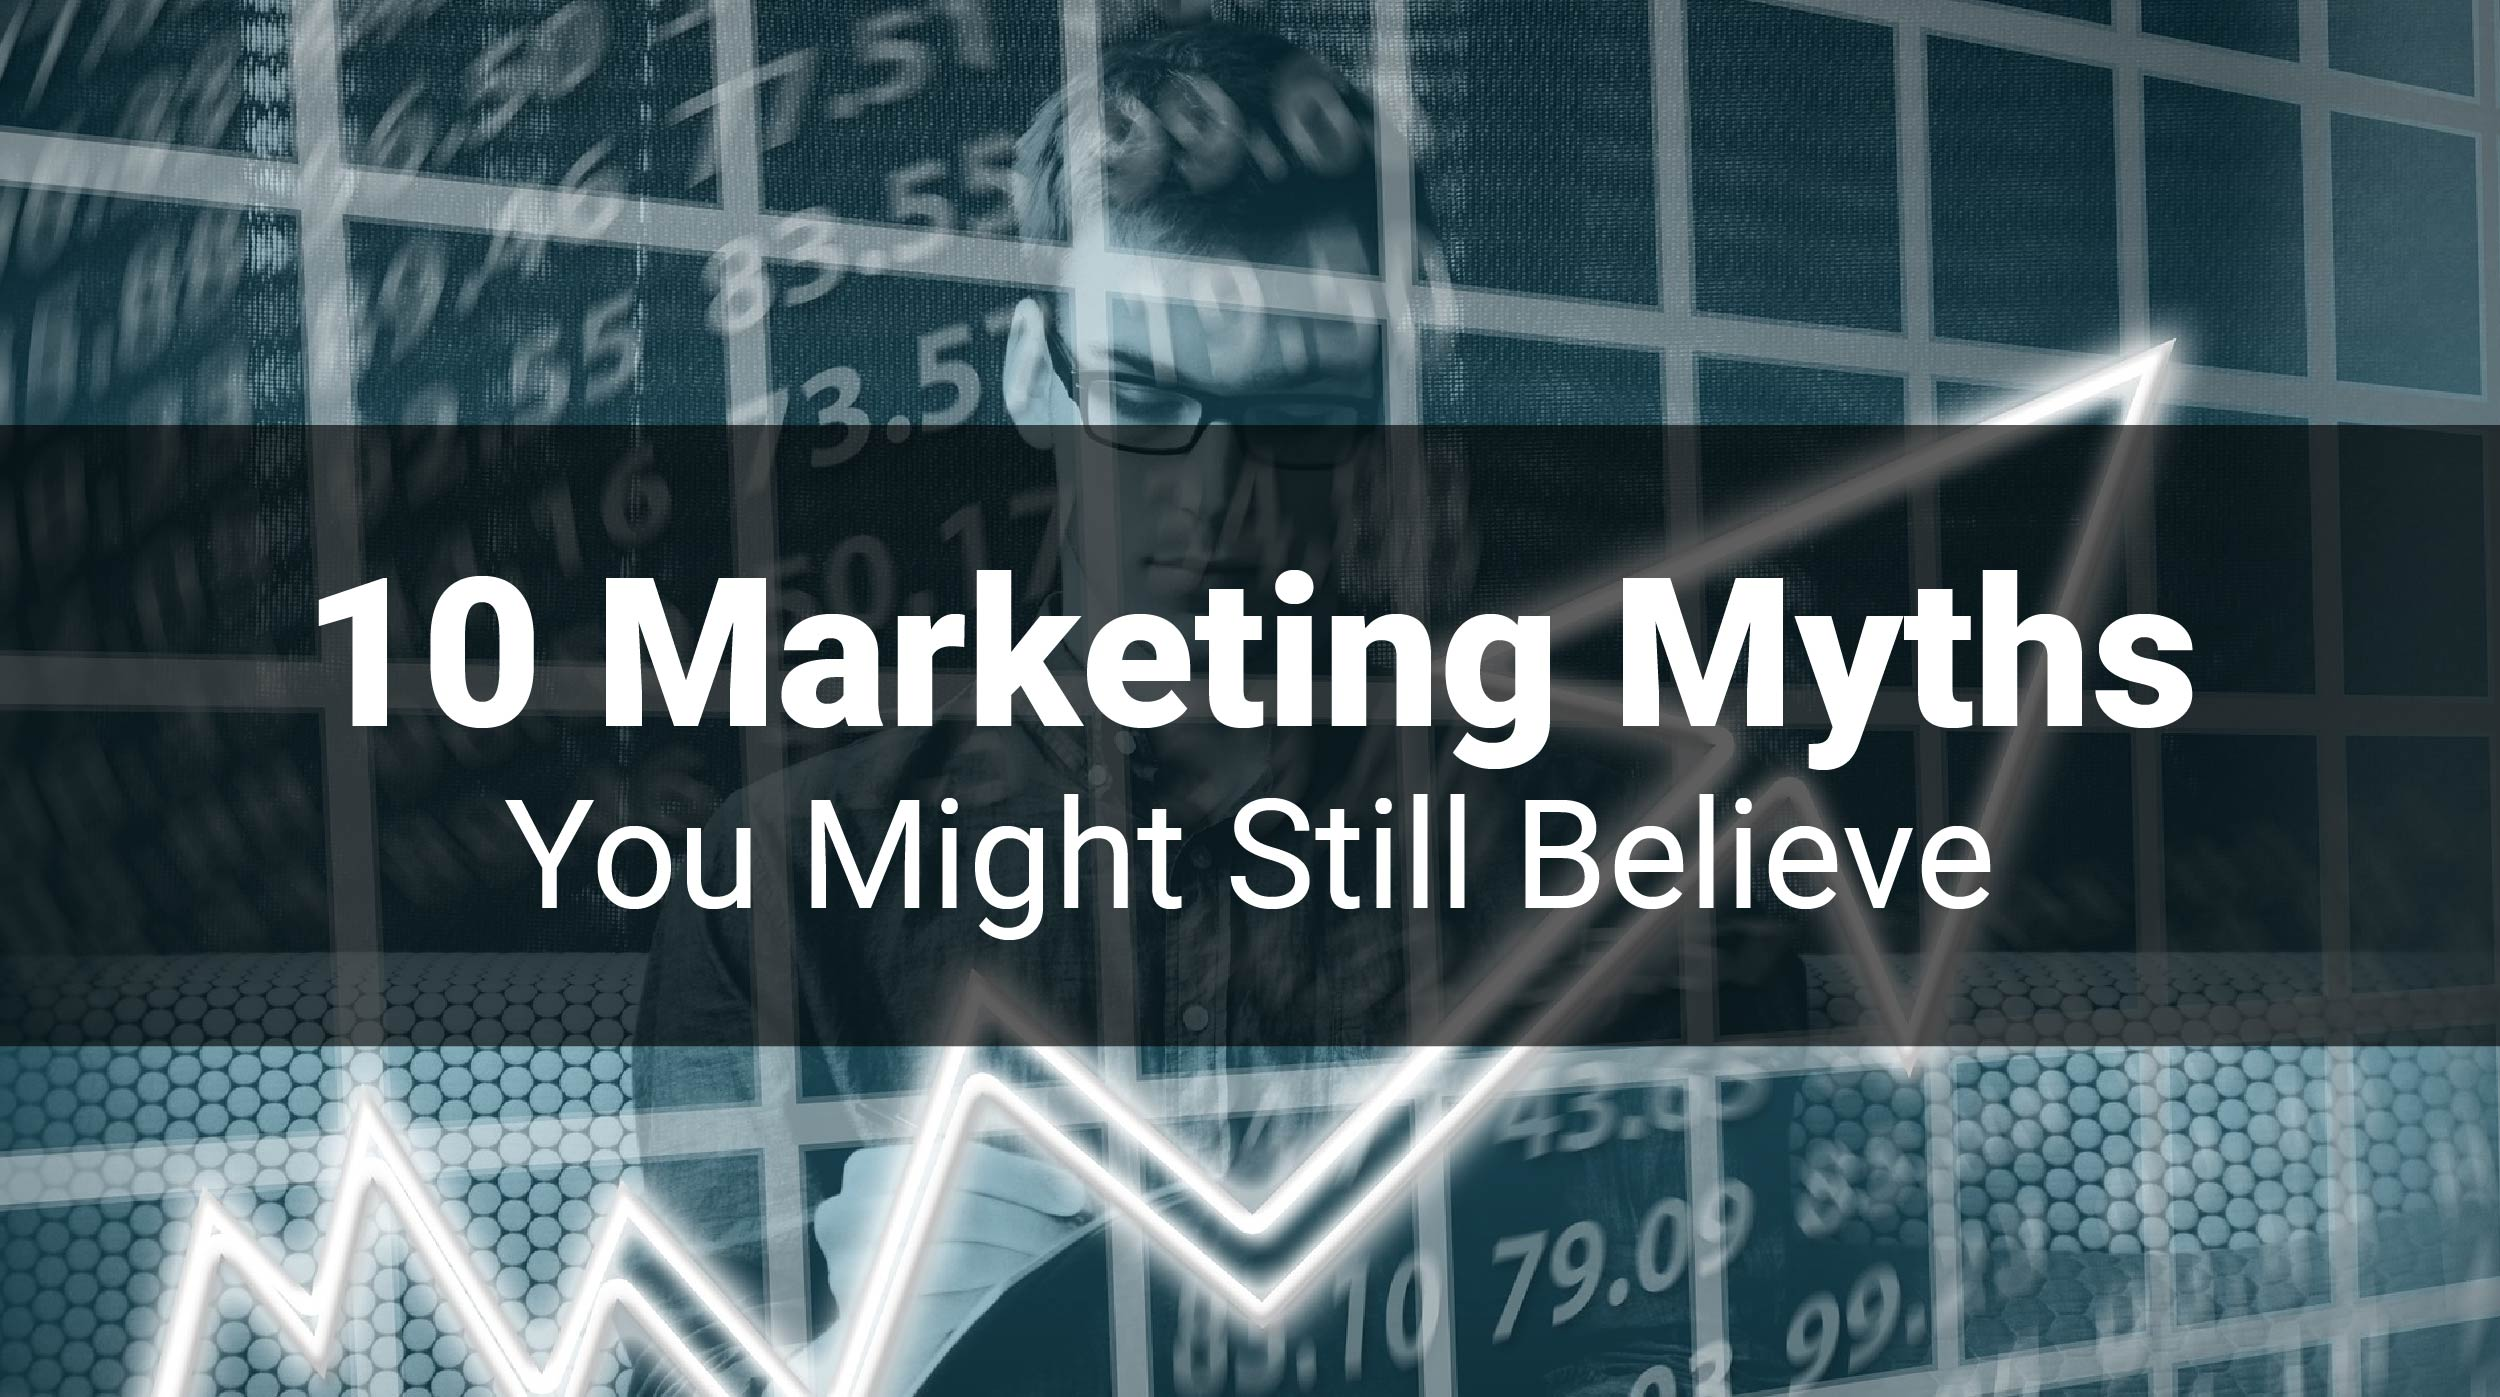 10 Marketing Myths You Might Still Believe